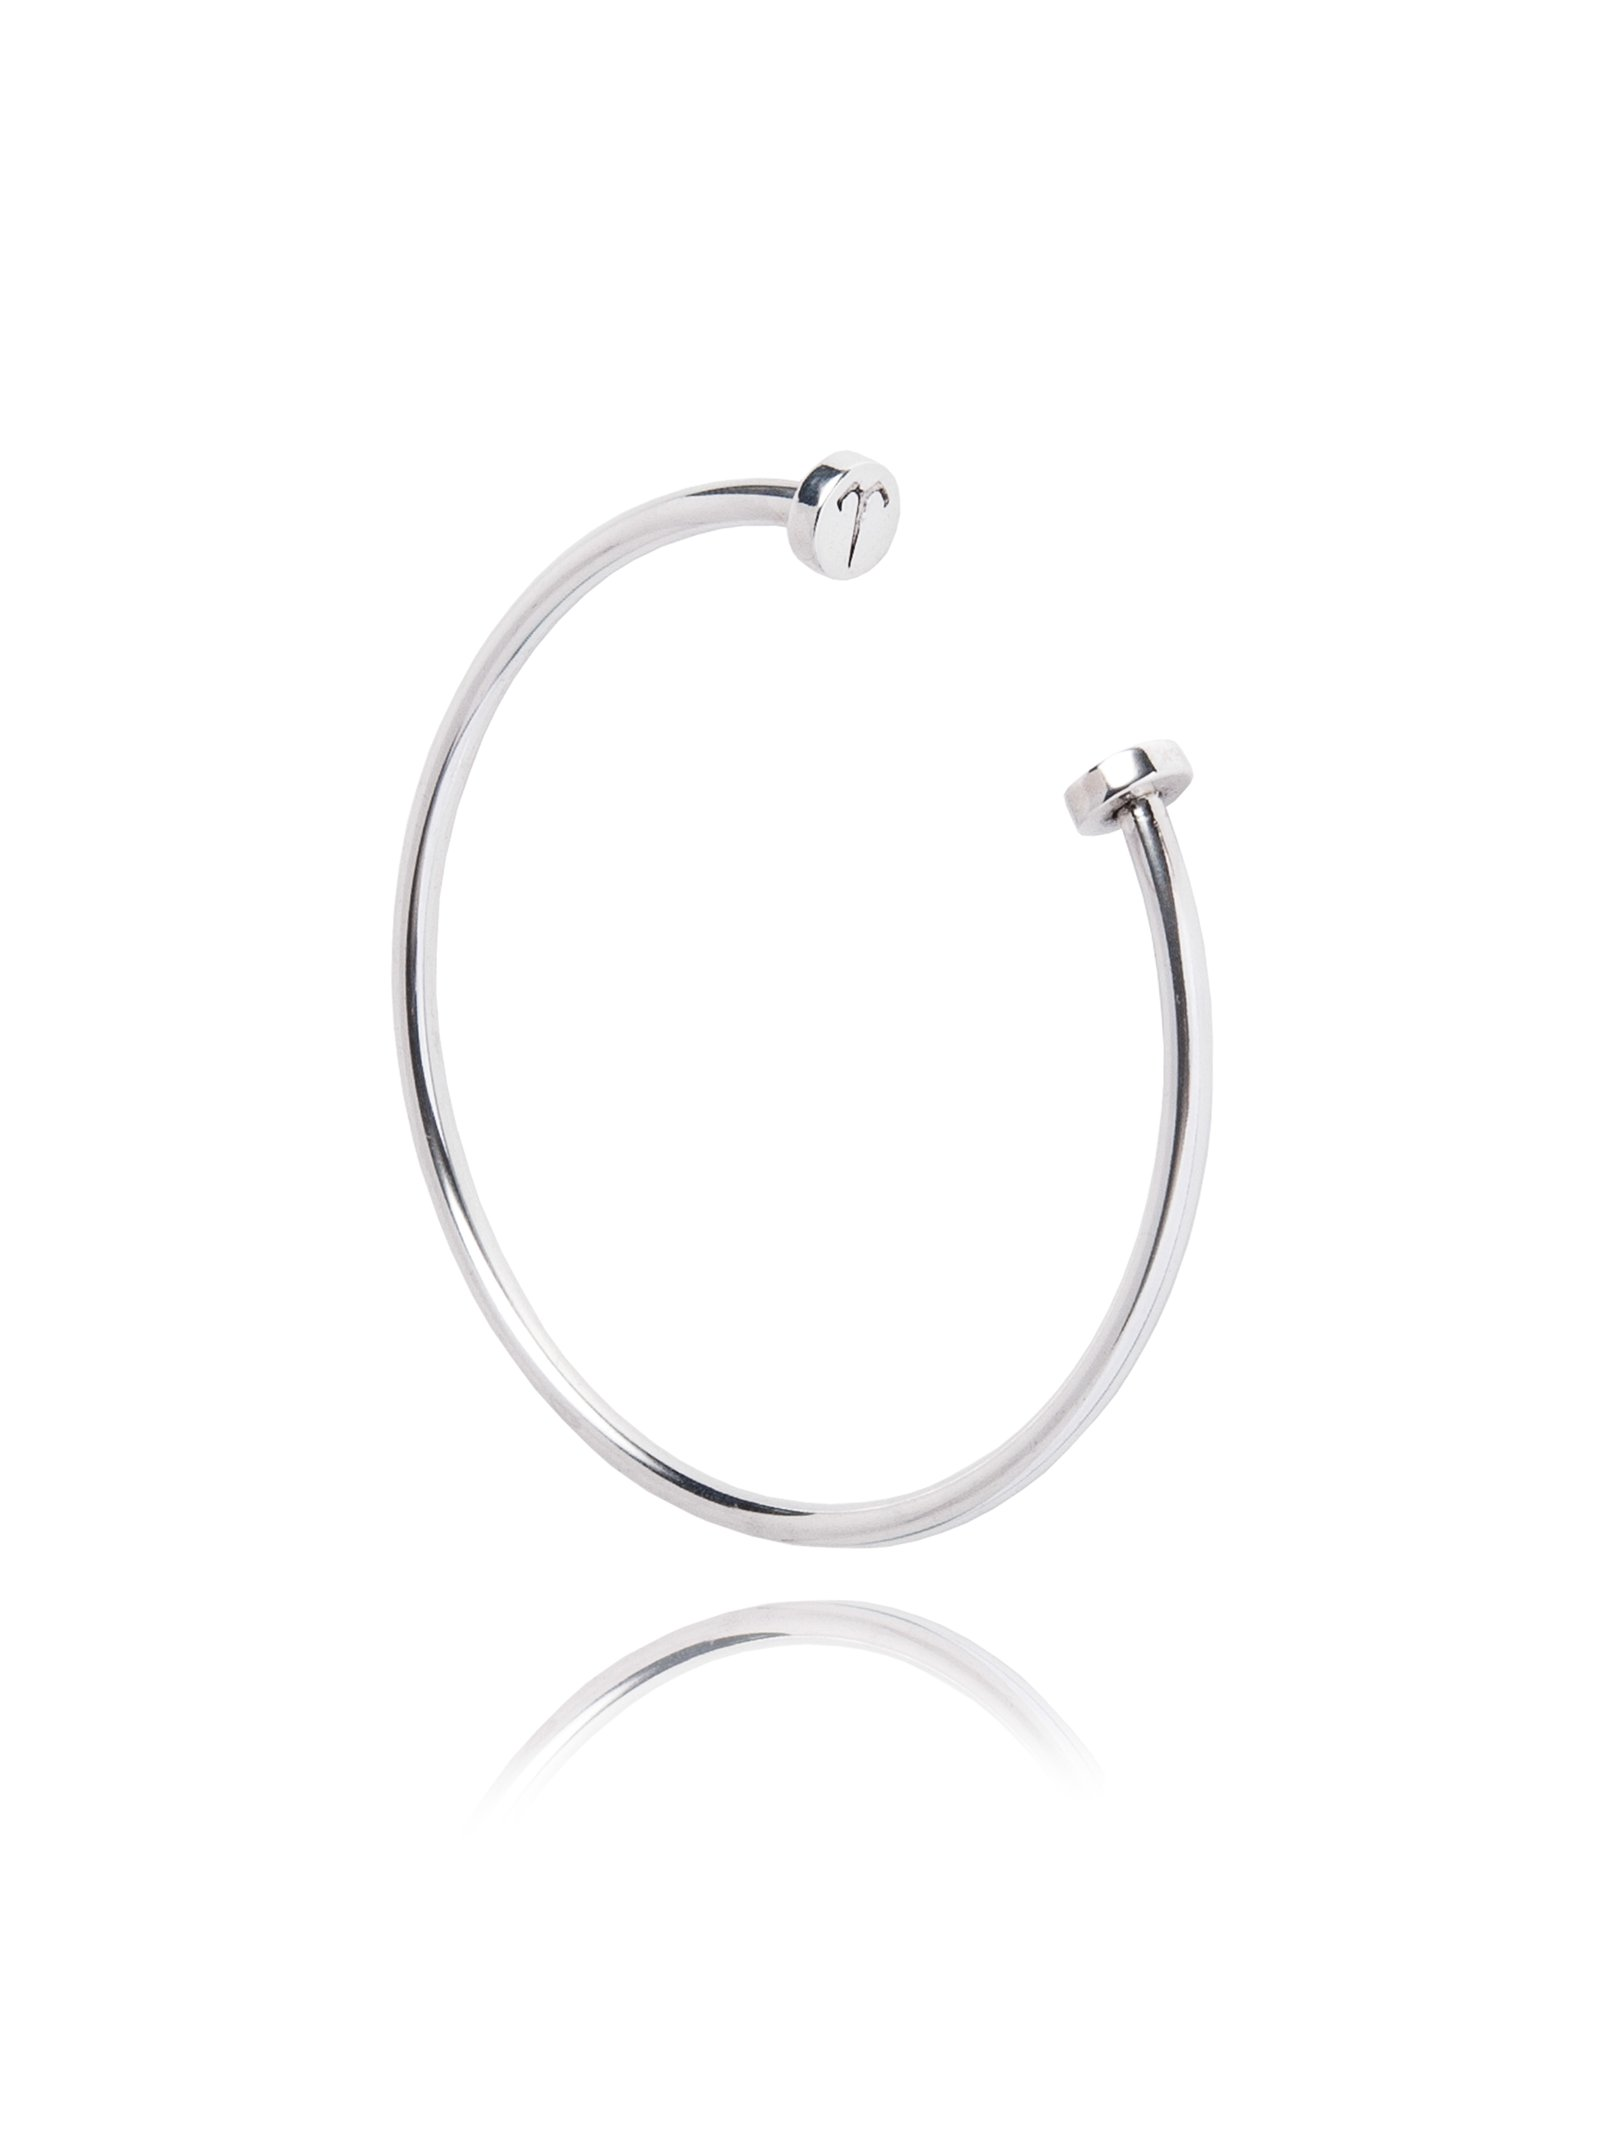 Ternary London GRAPHIC CUT OPEN BANGLE STERLING SILVER